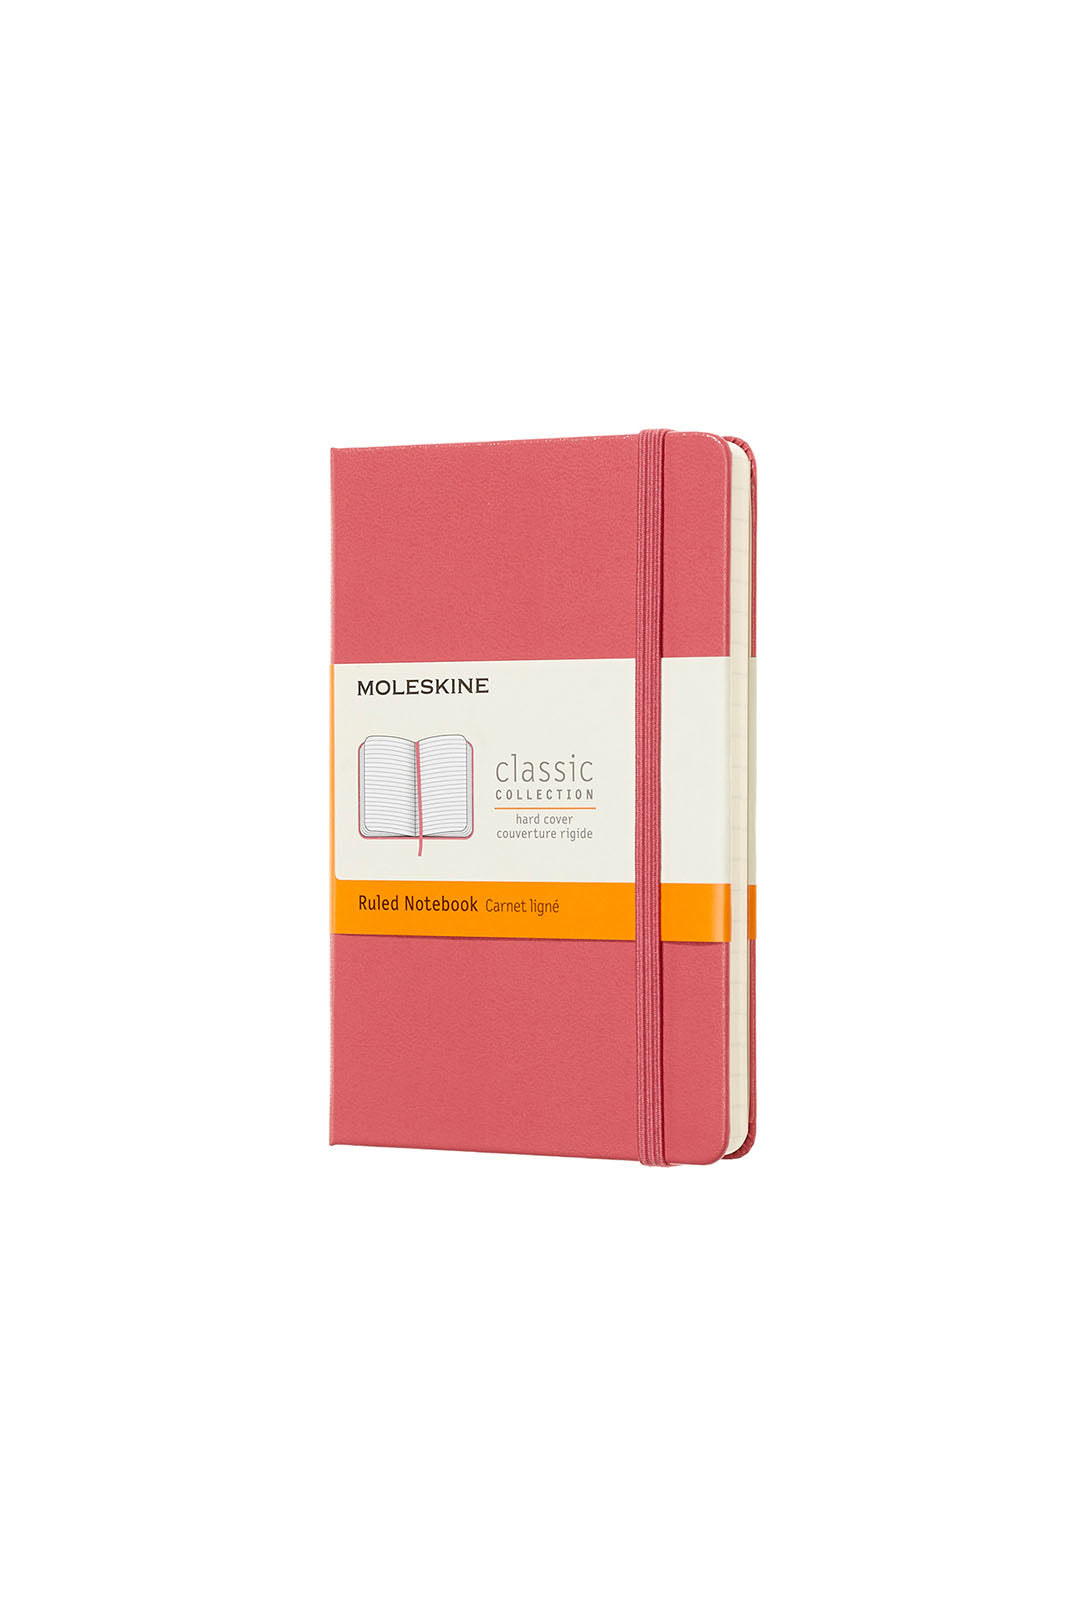 Moleskine - Classic Hard Cover Notebook - Ruled - Pocket (9x14cm) - Daisy Pink